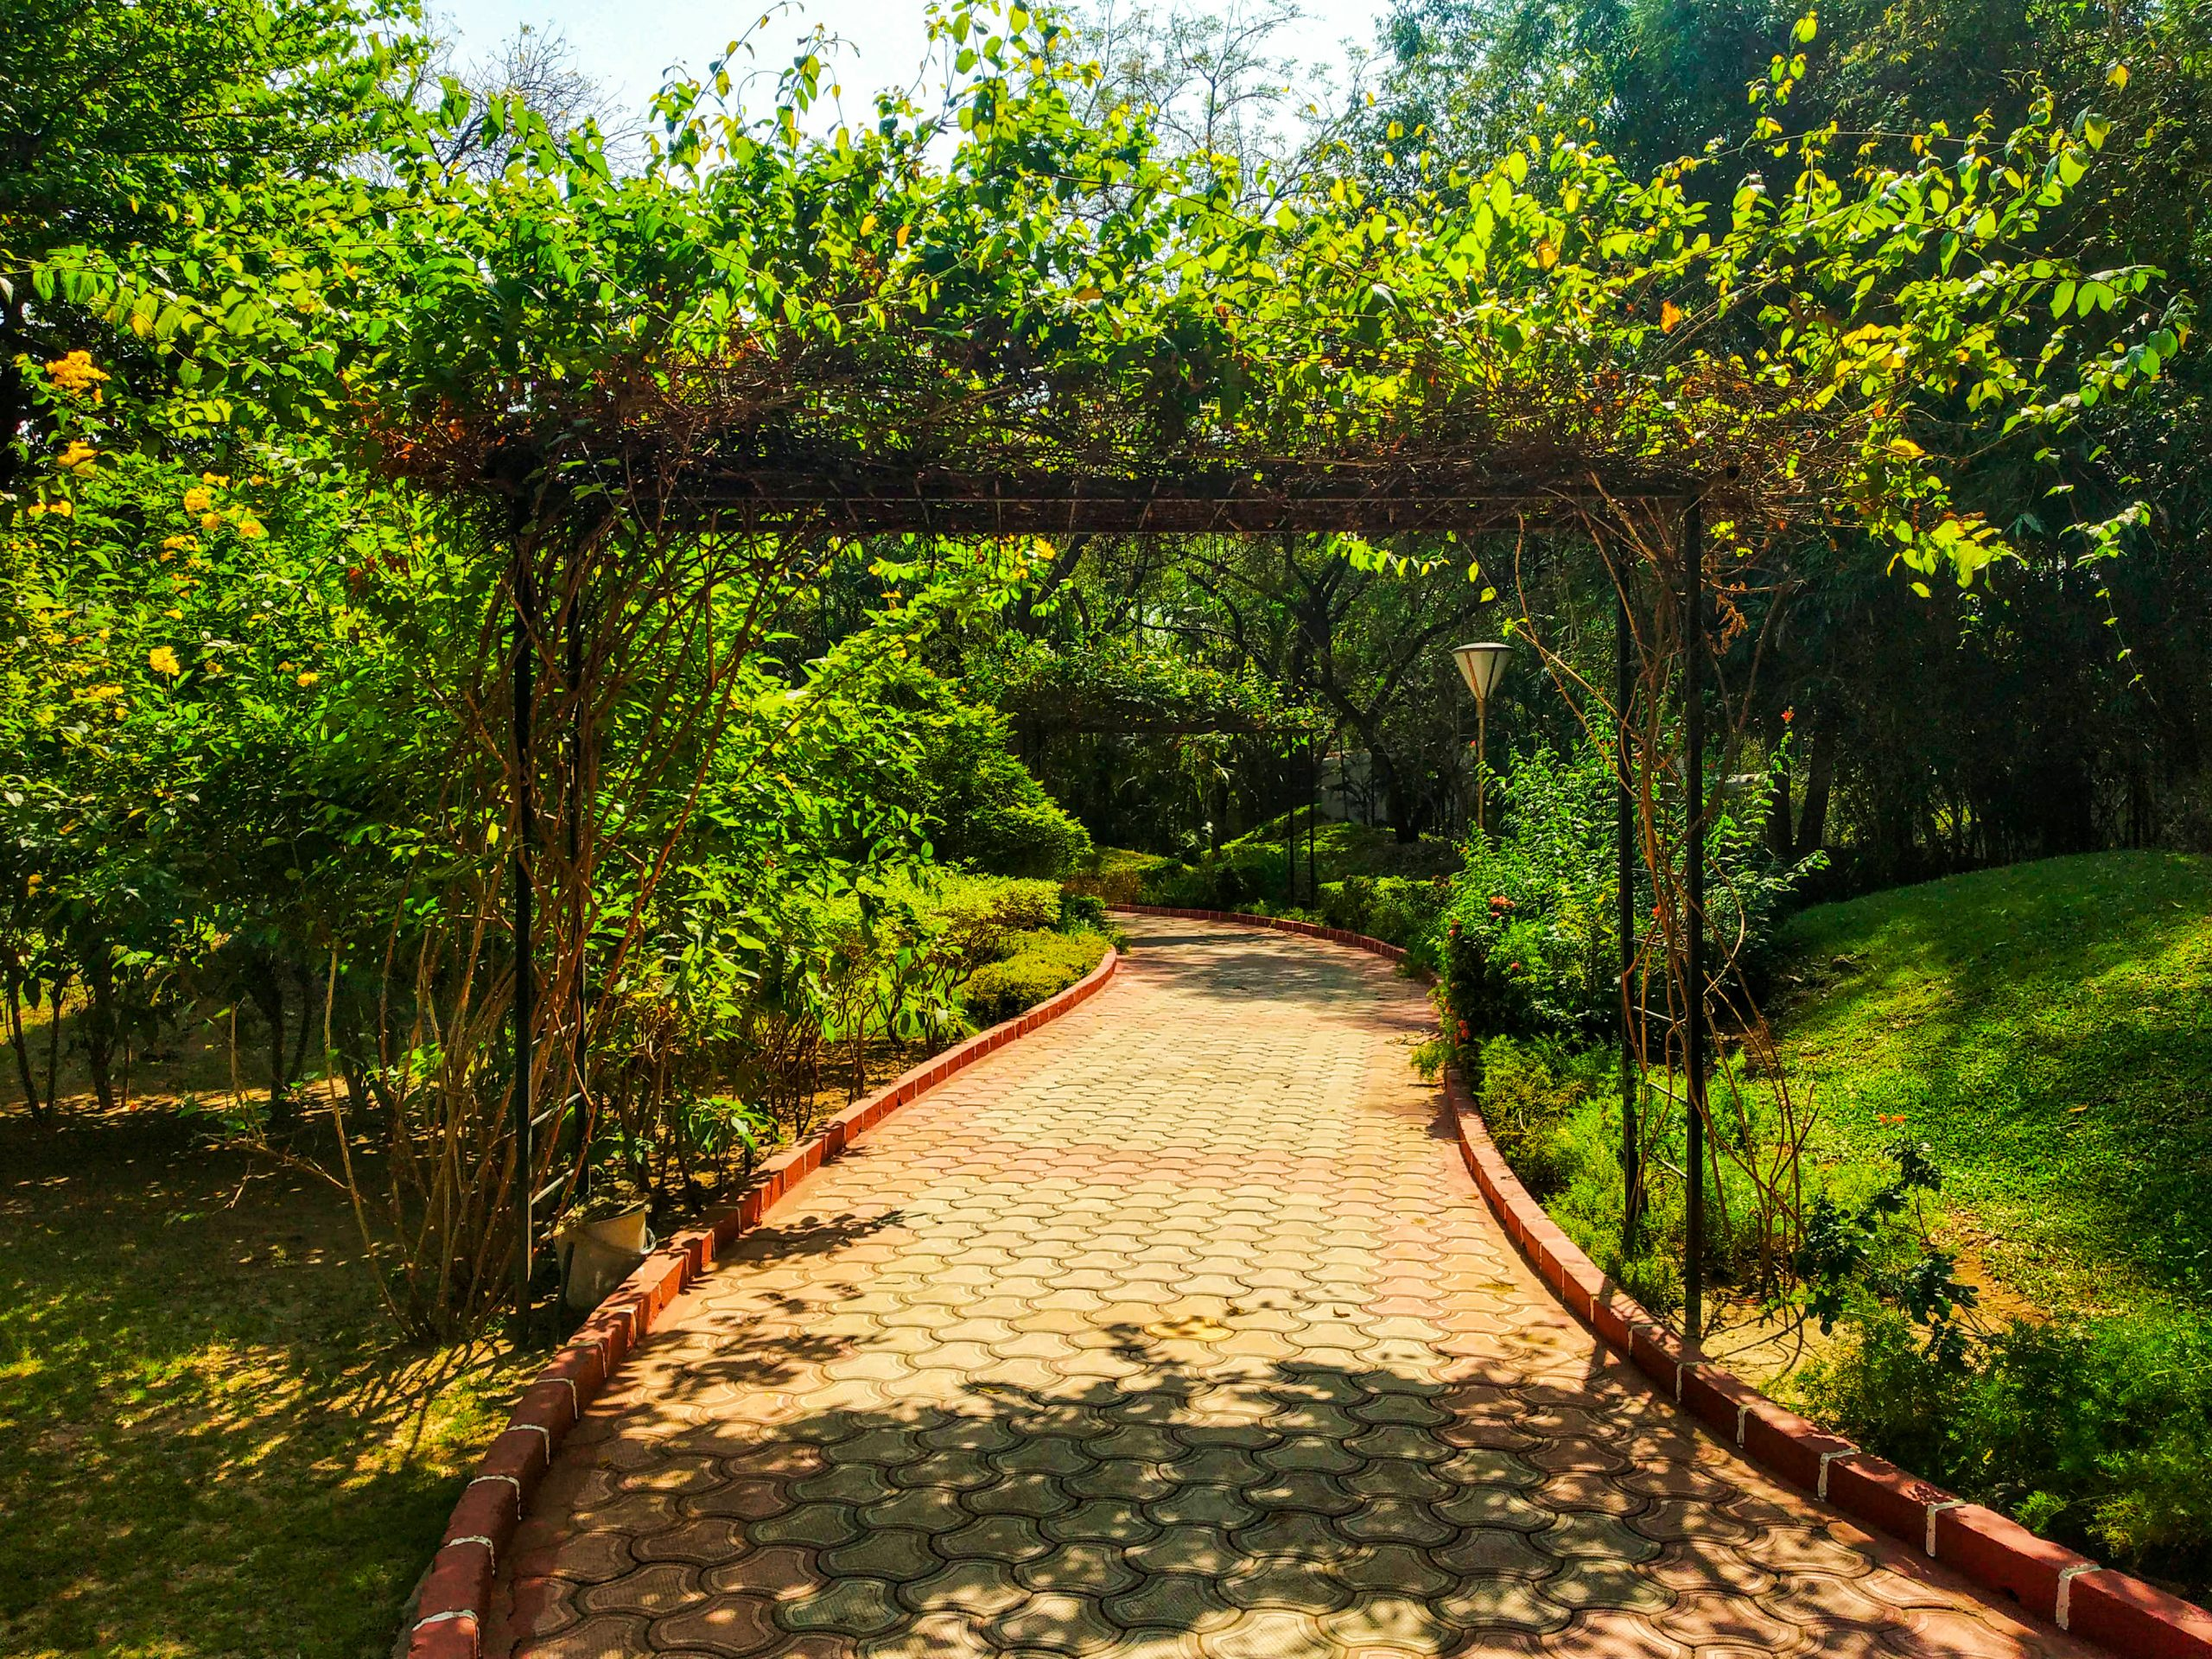 Walkway of the garden